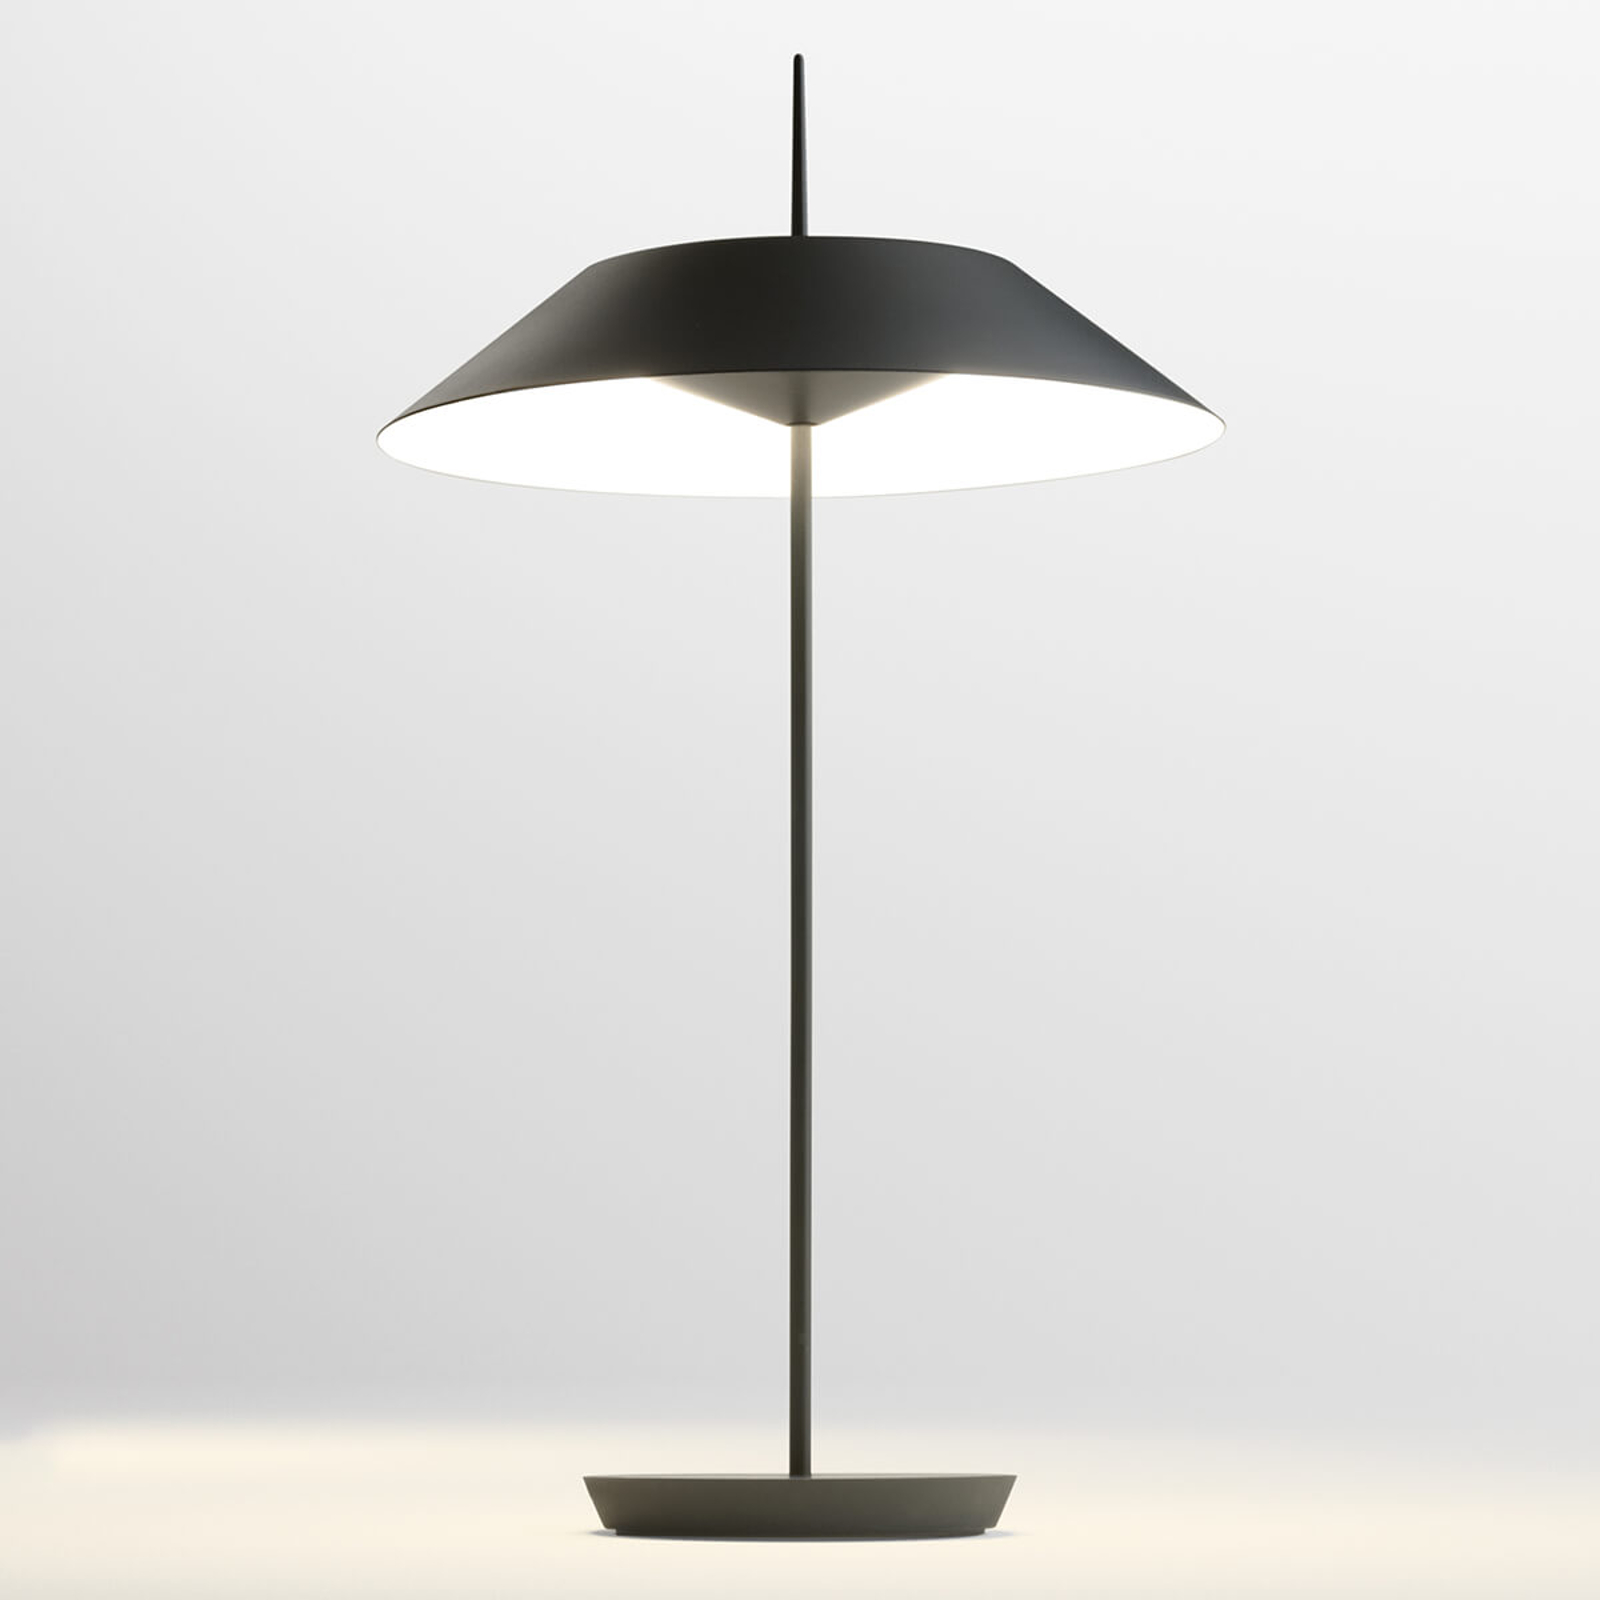 Vibia Mayfair LED tafellamp, grafietgrijs